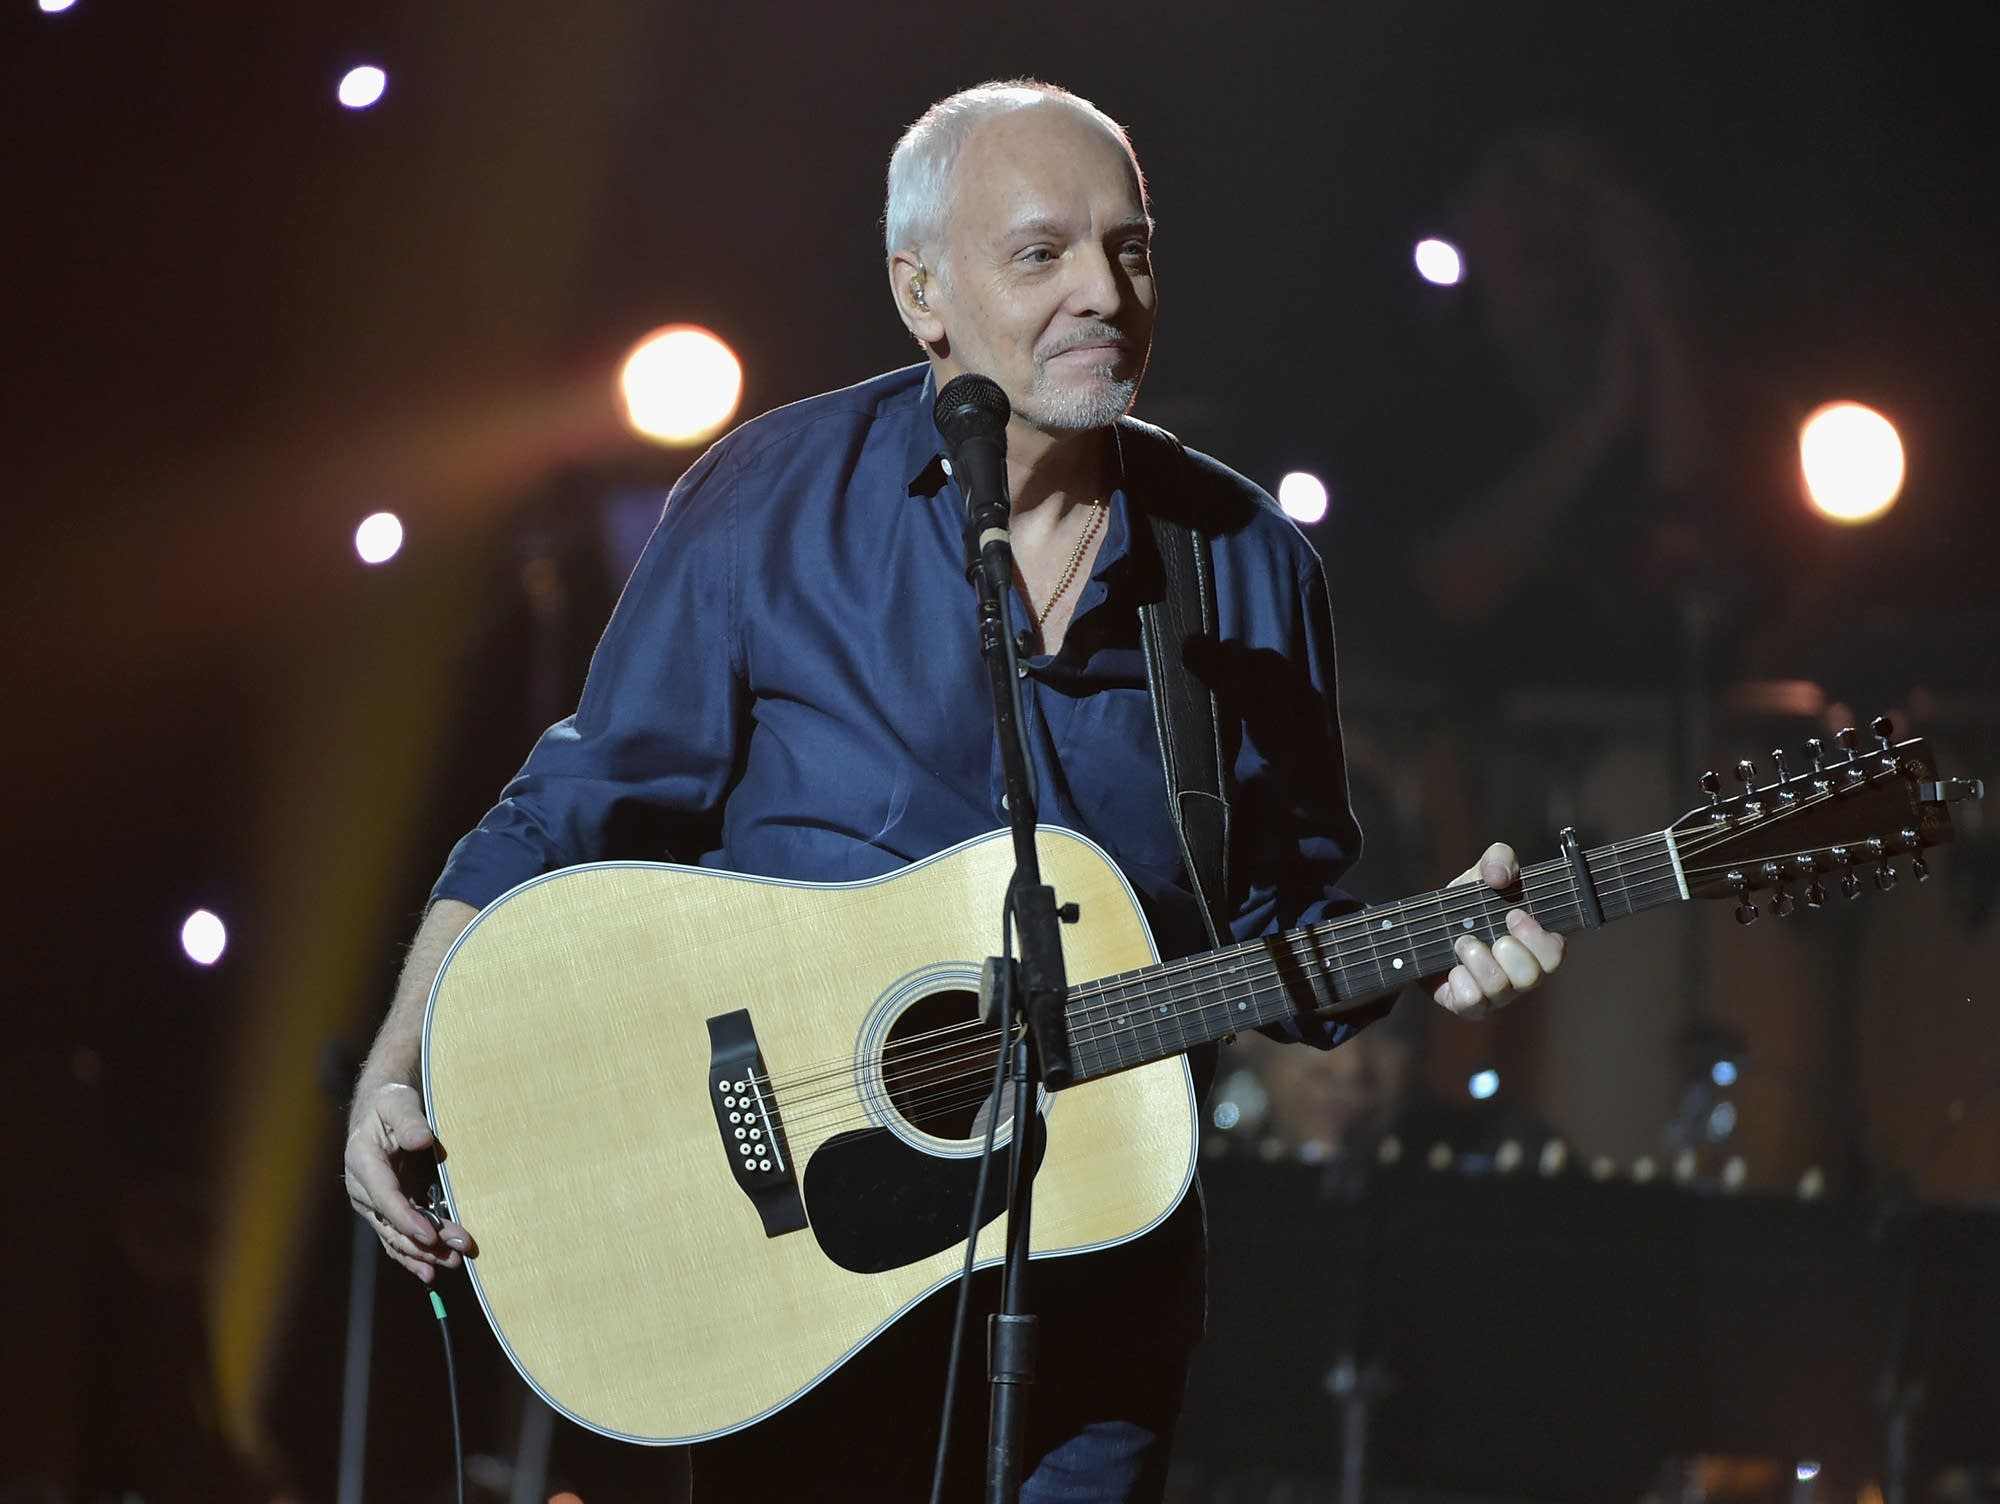 Peter Frampton performs at Madison Square Garden in 2015.